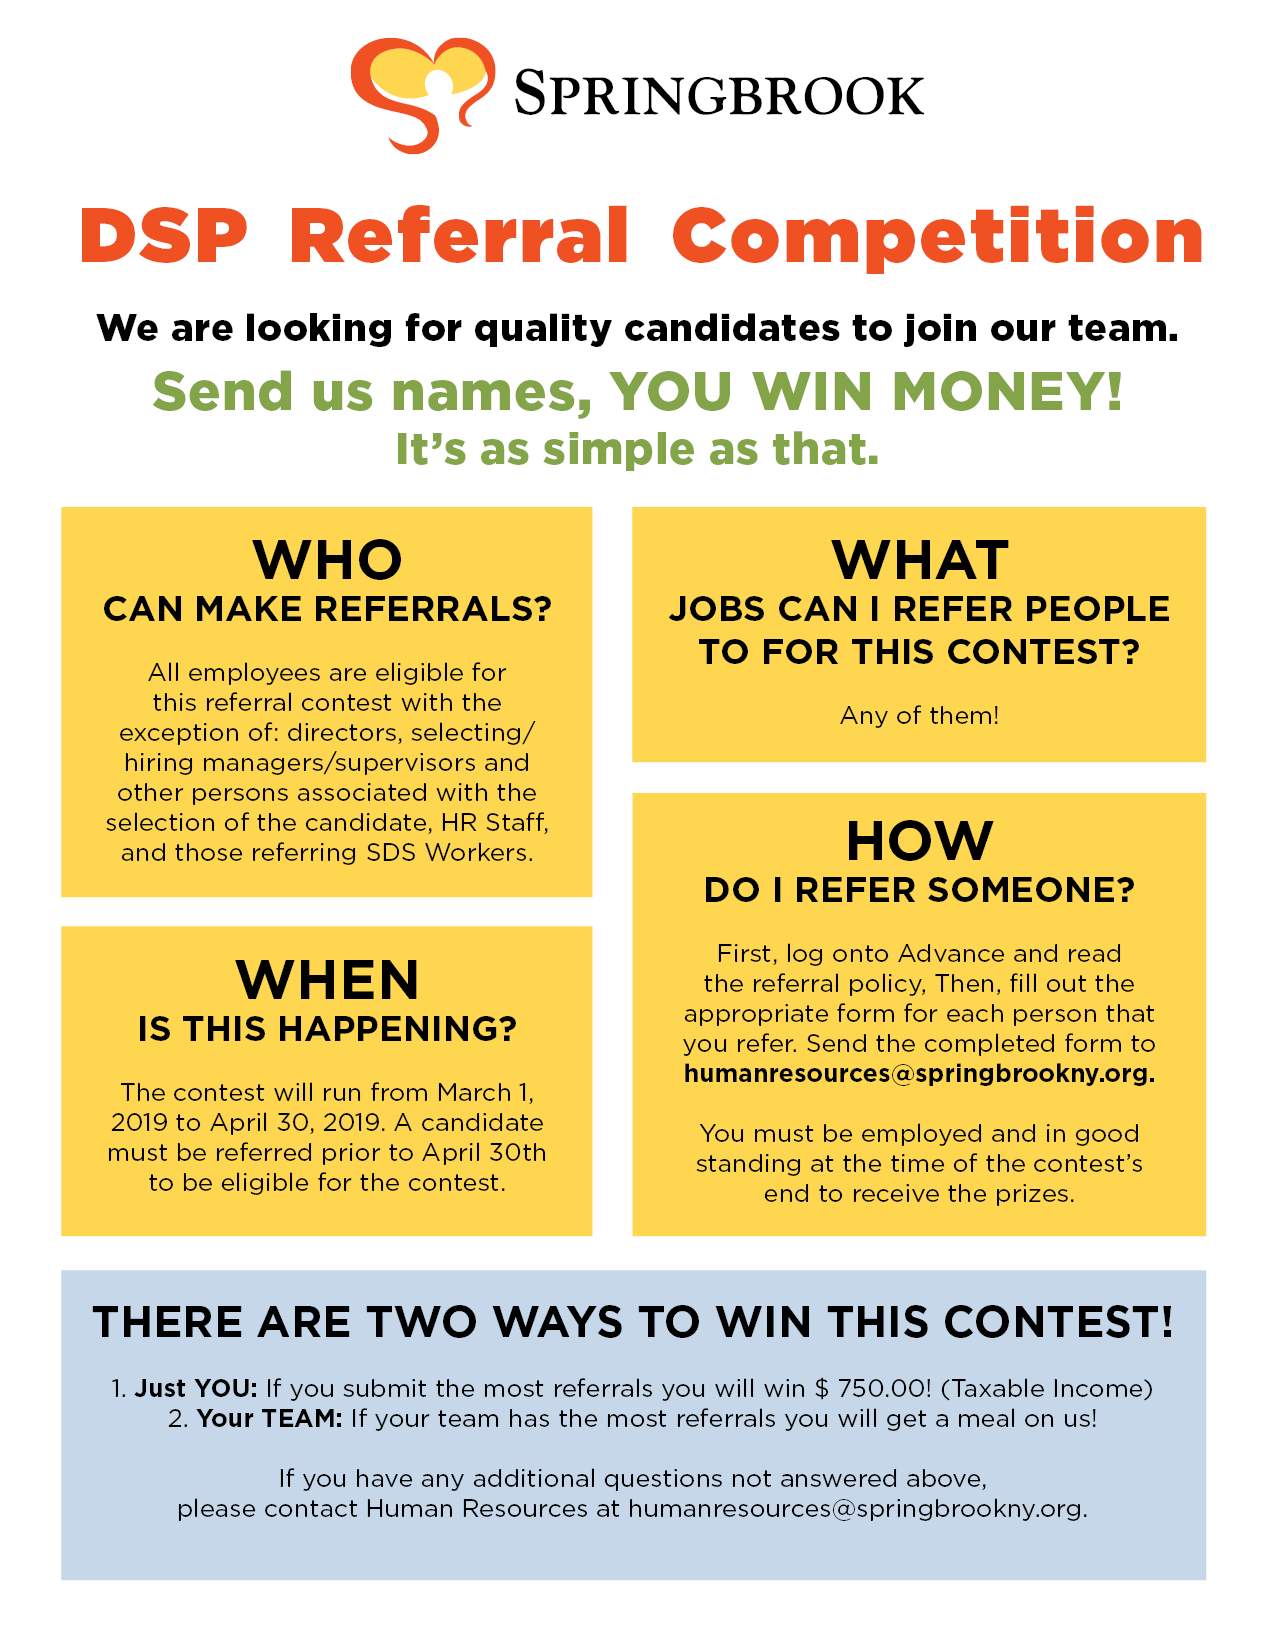 SP19 DSP Referral Contest - DSP Referral Competition